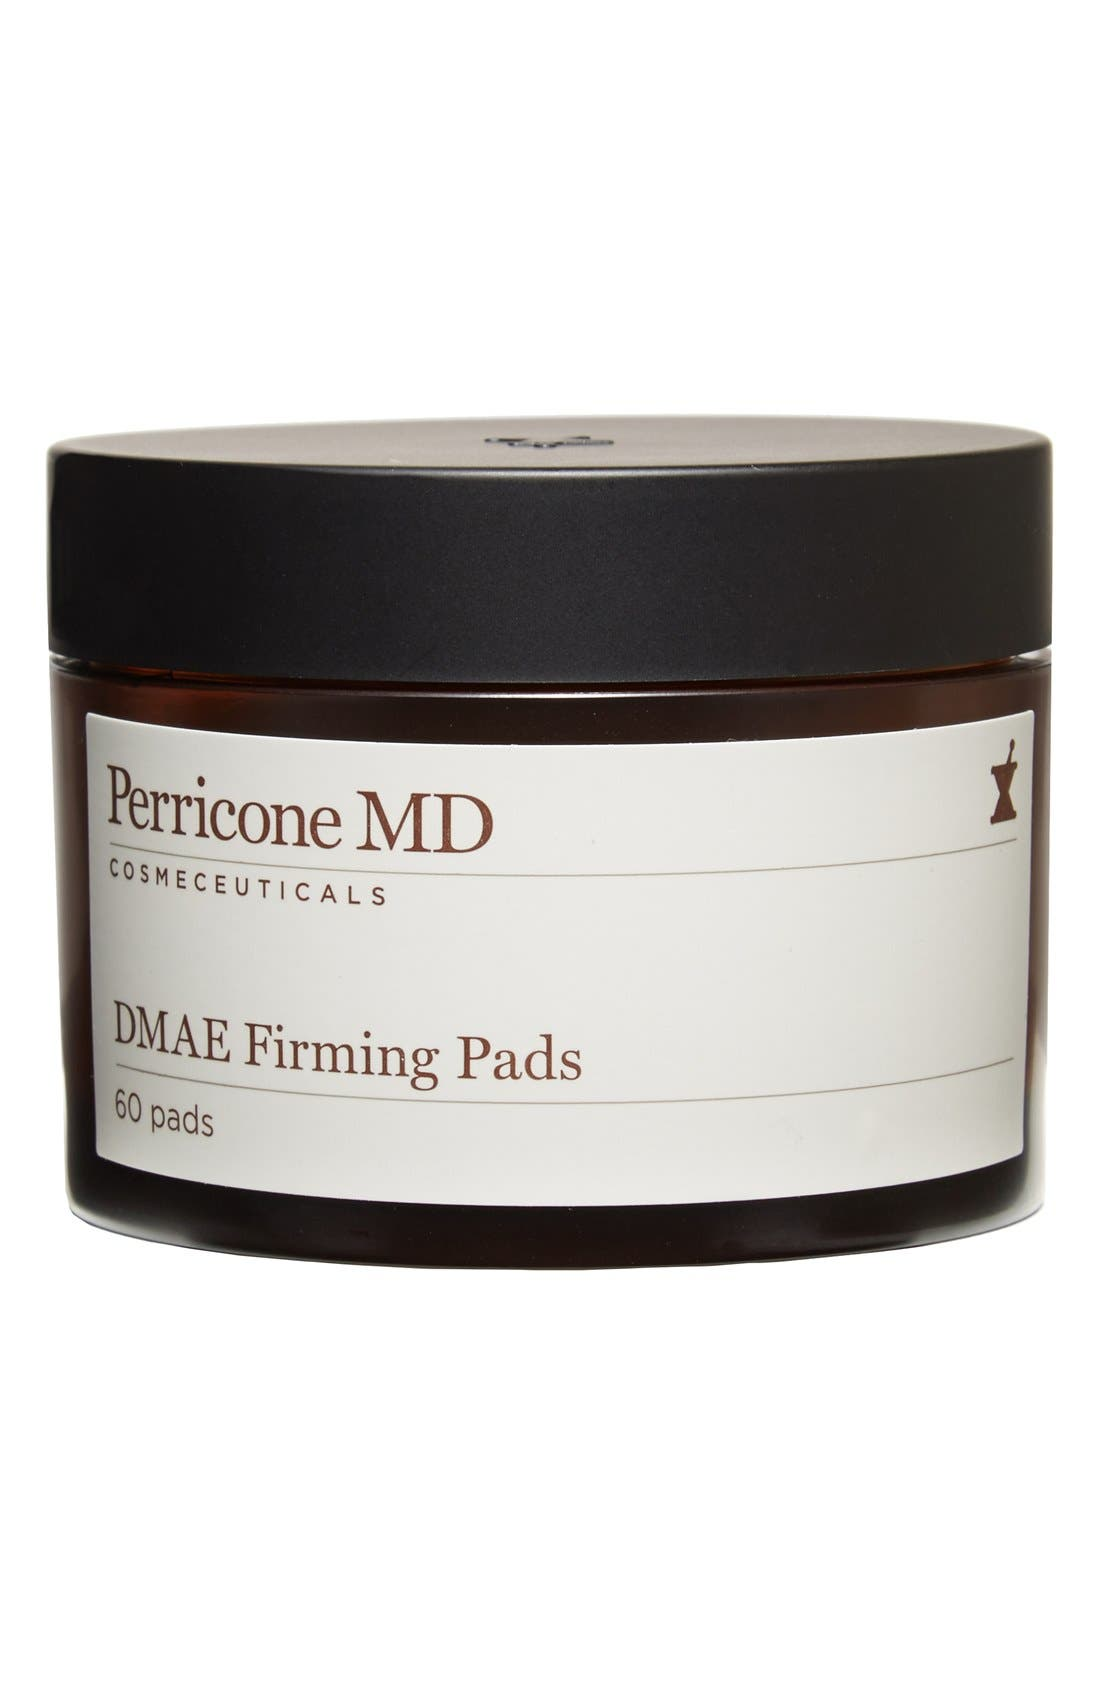 DMAE Firming Pads,                             Main thumbnail 1, color,                             000